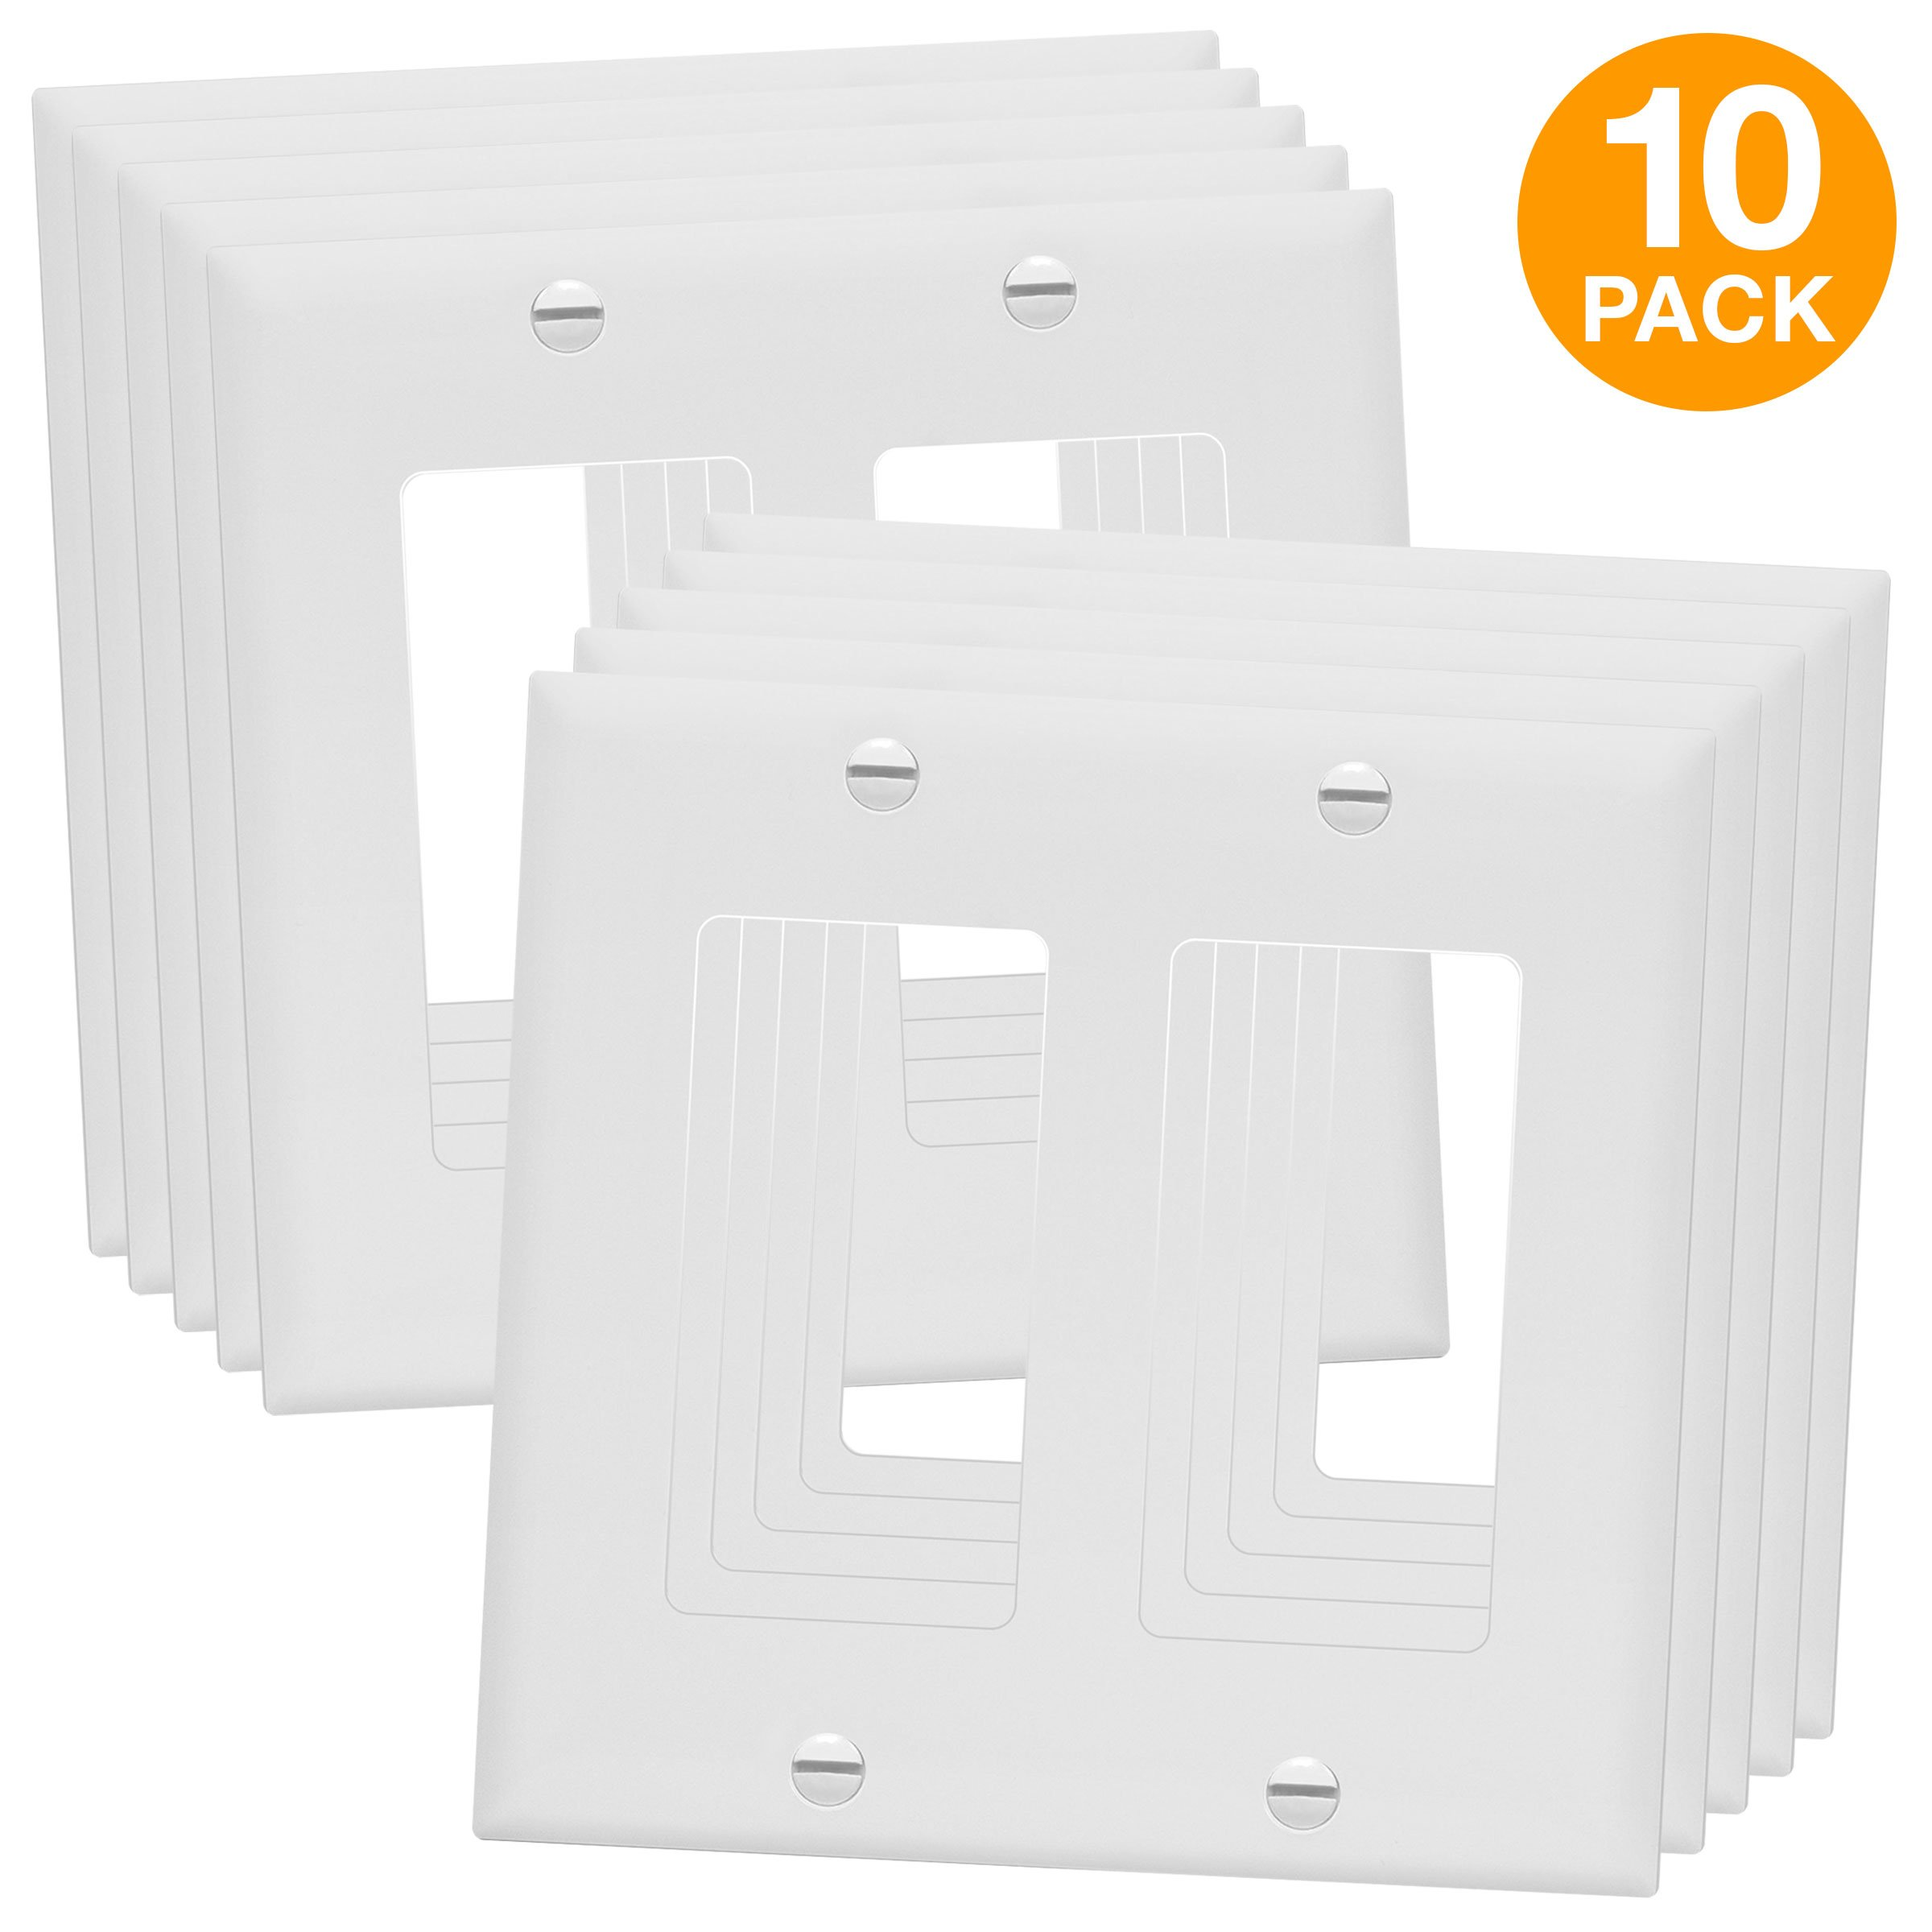 ENERLITES Decorator Light Switch or Receptacle Outlet Wall Plate, Size 2-Gang 4.50'' x 4.57'', Polycarbonate Thermoplastic, 8832-W-10PCS, White (10 Pack) by ENERLITES